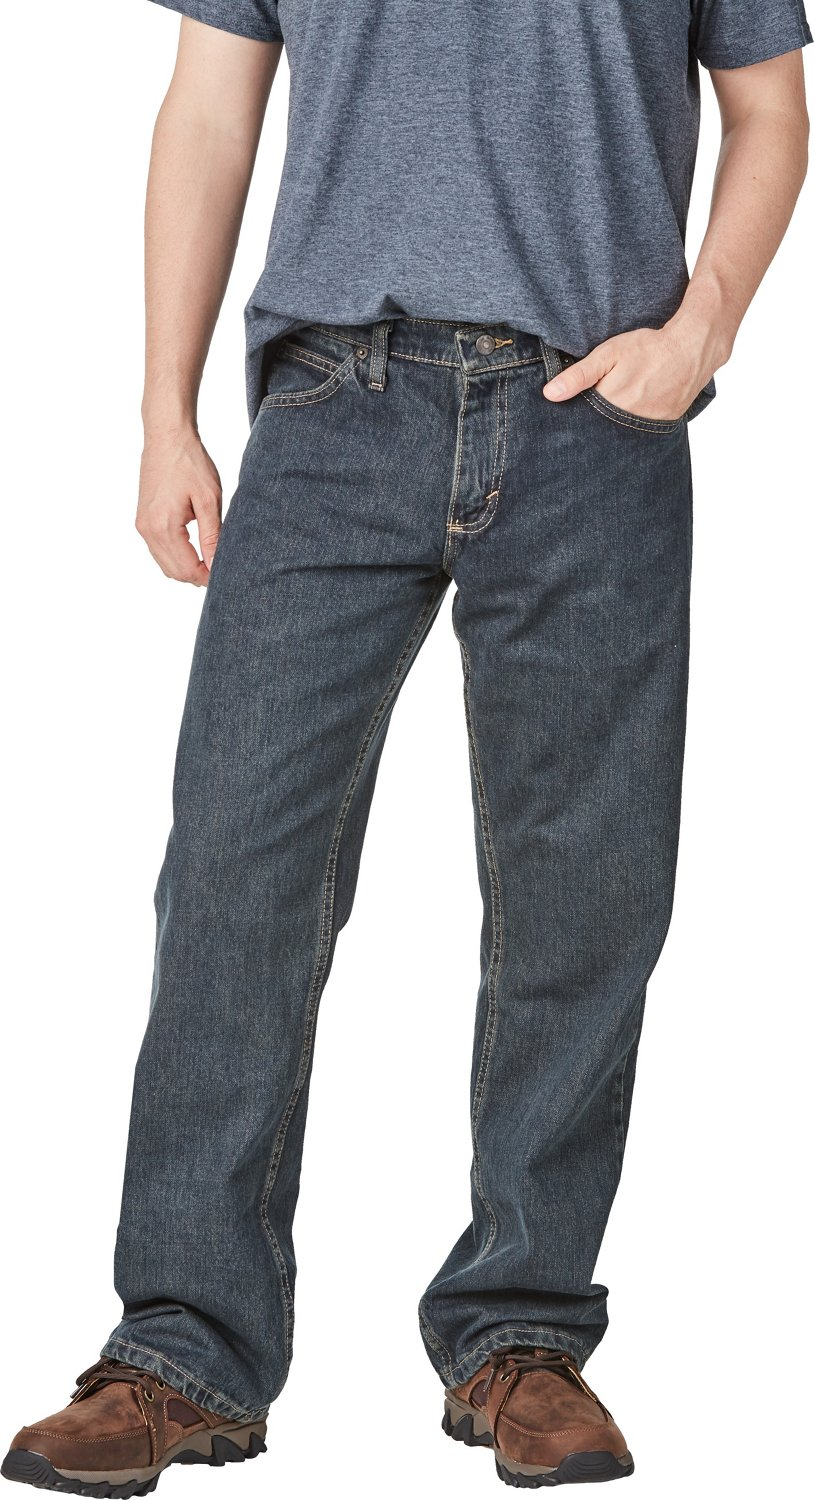 36d8558ee76a7 Display product reviews for Magellan Outdoors Men's Boot Cut Jeans